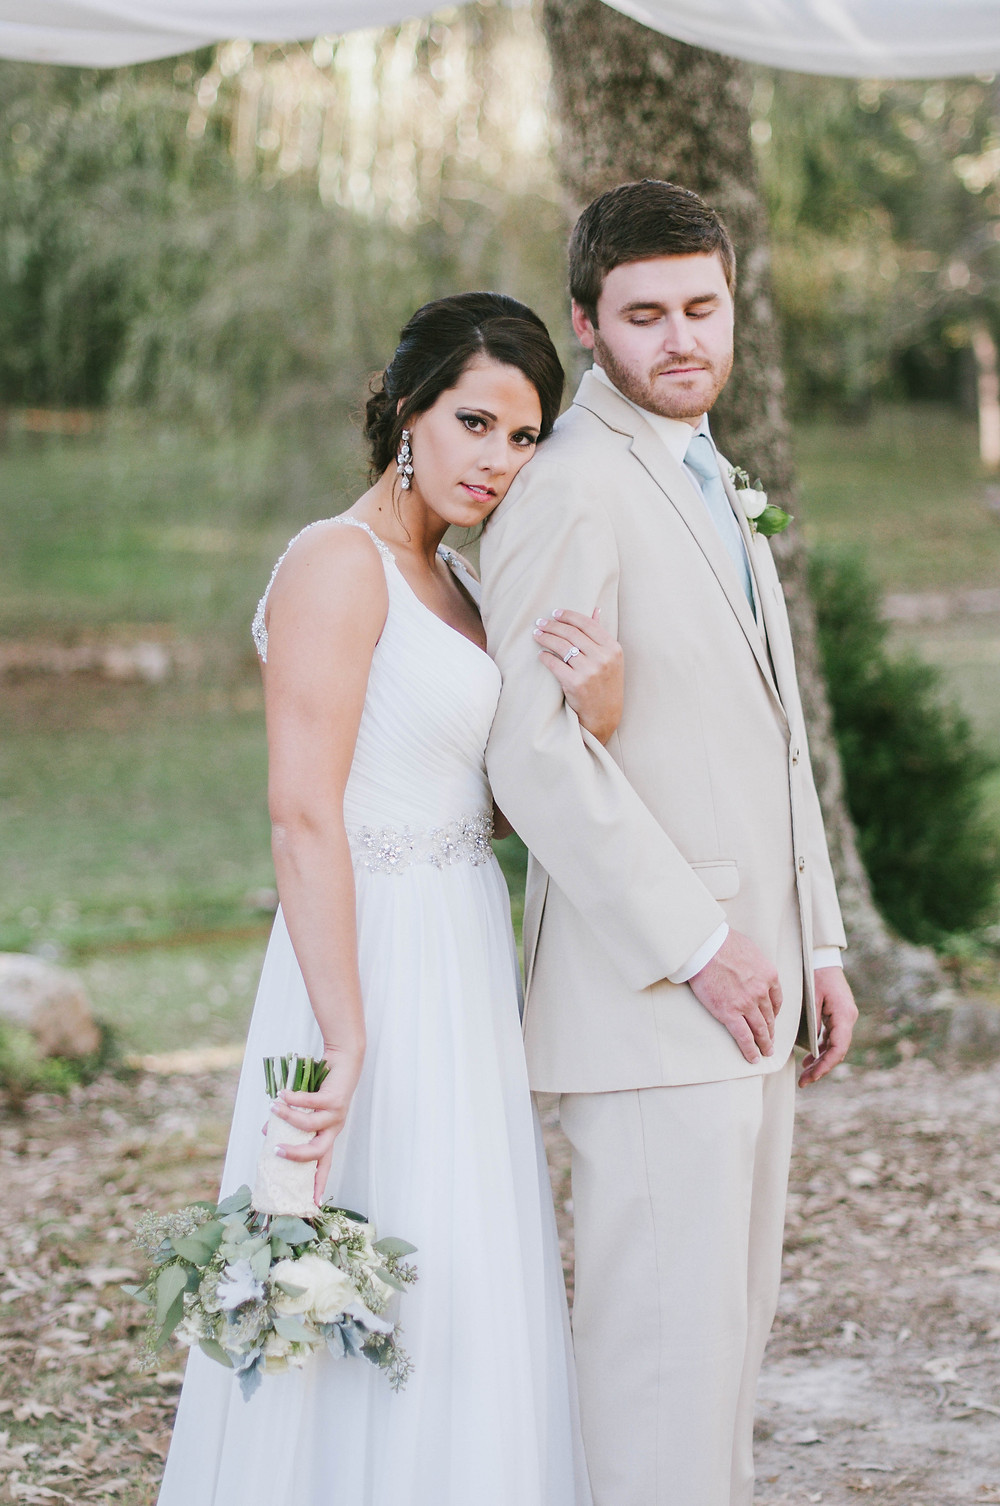 Wedding in the woods in Tennessee. Bride is leaning against groom for wedding pose. Bride is holding bouquet upside down. Jonesboro, AR Photographers. Jonesboro, AR photographer